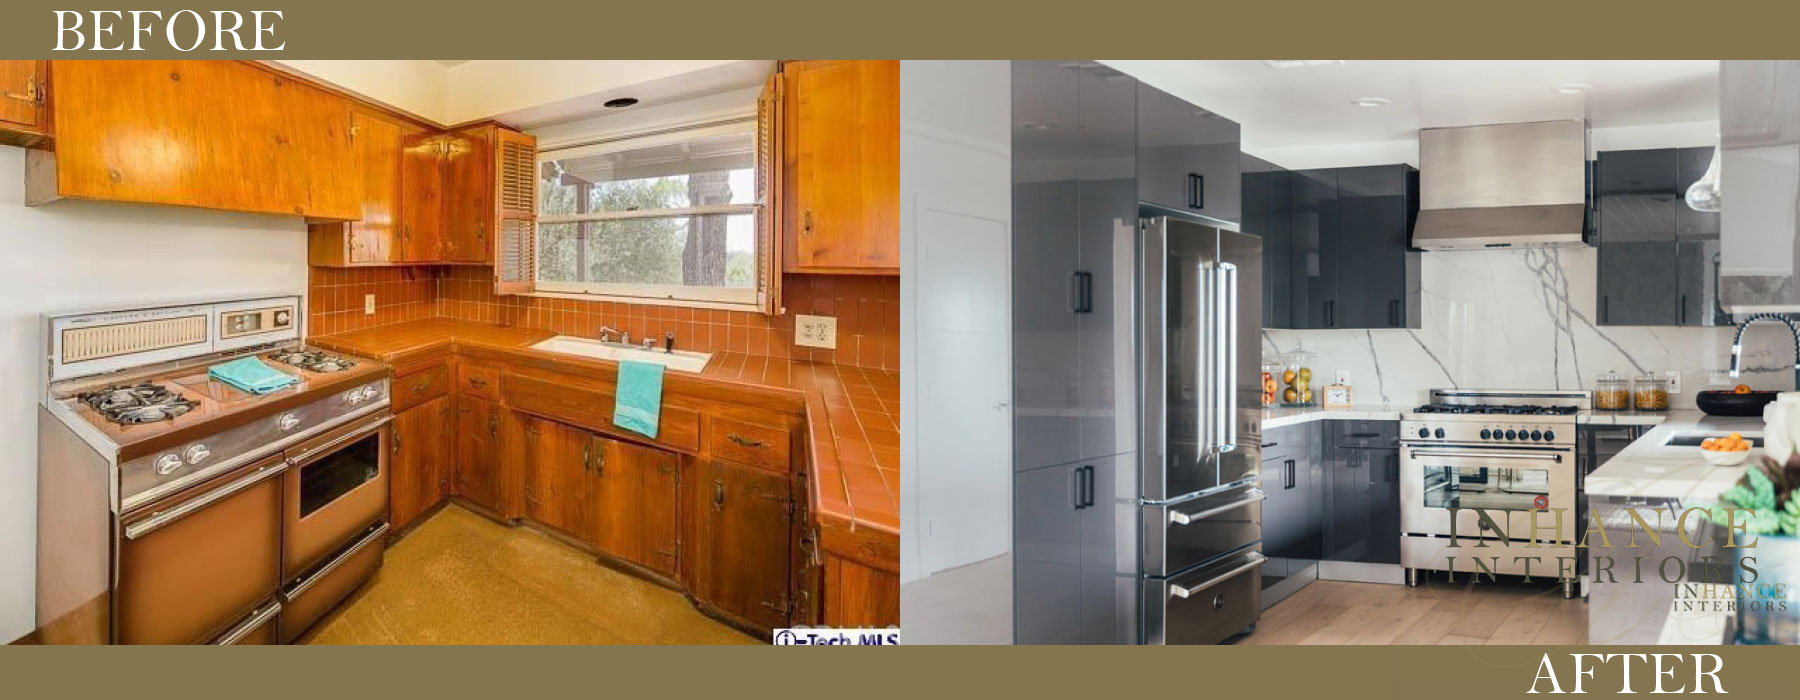 Sequoia_Before-and-After_Side-Kitchen.jpg